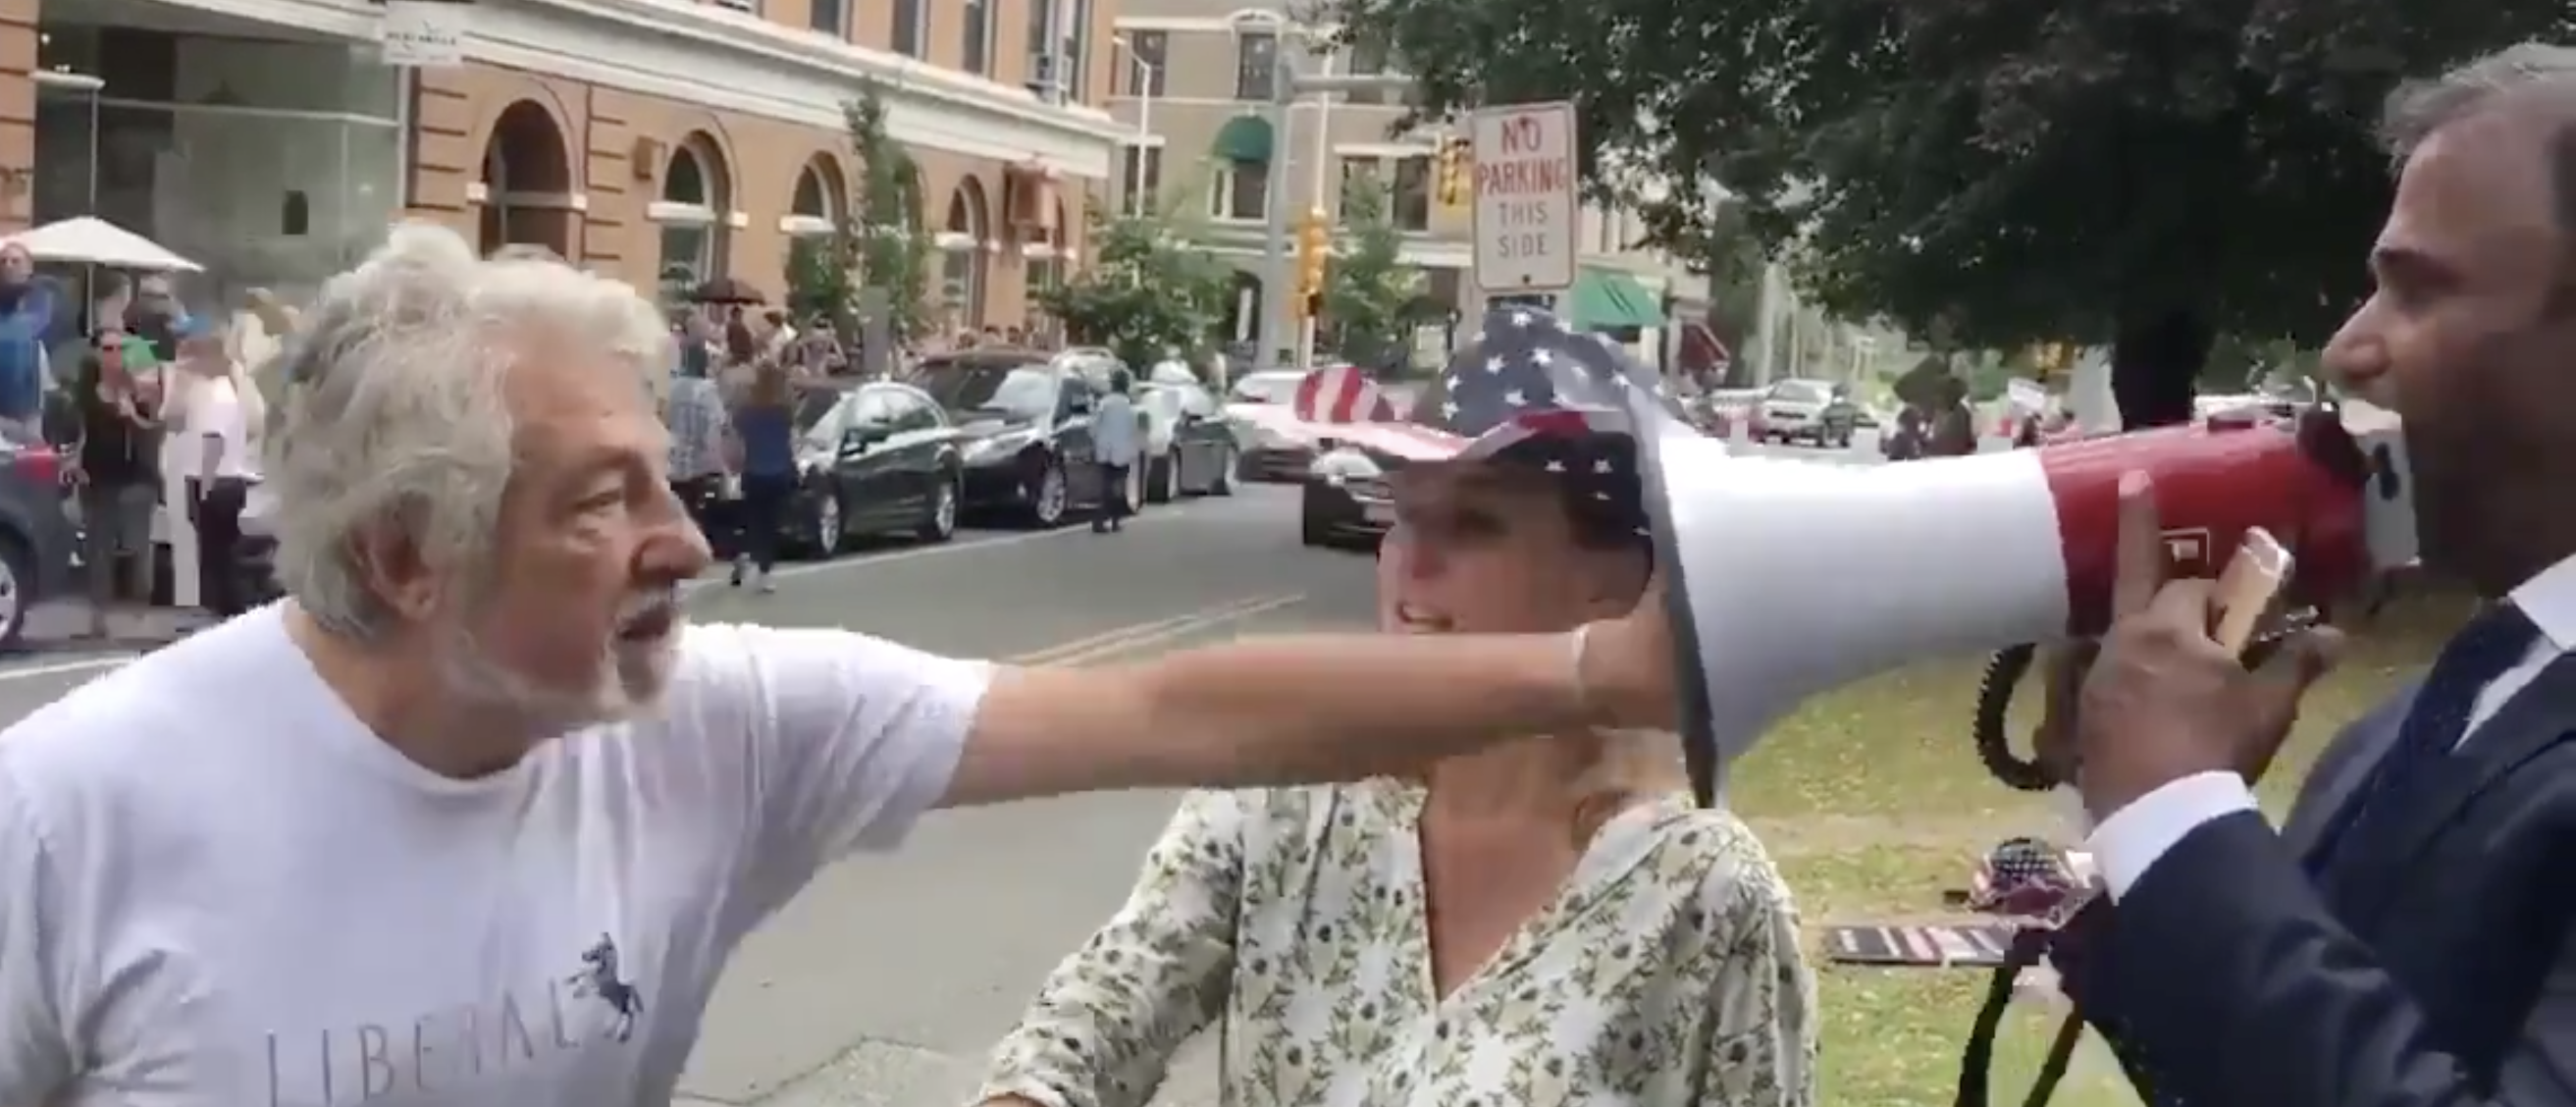 Elizabeth Warren Supporter Shoves Warren Challenger At Rally, Is Promptly Apprehended | The Daily Caller